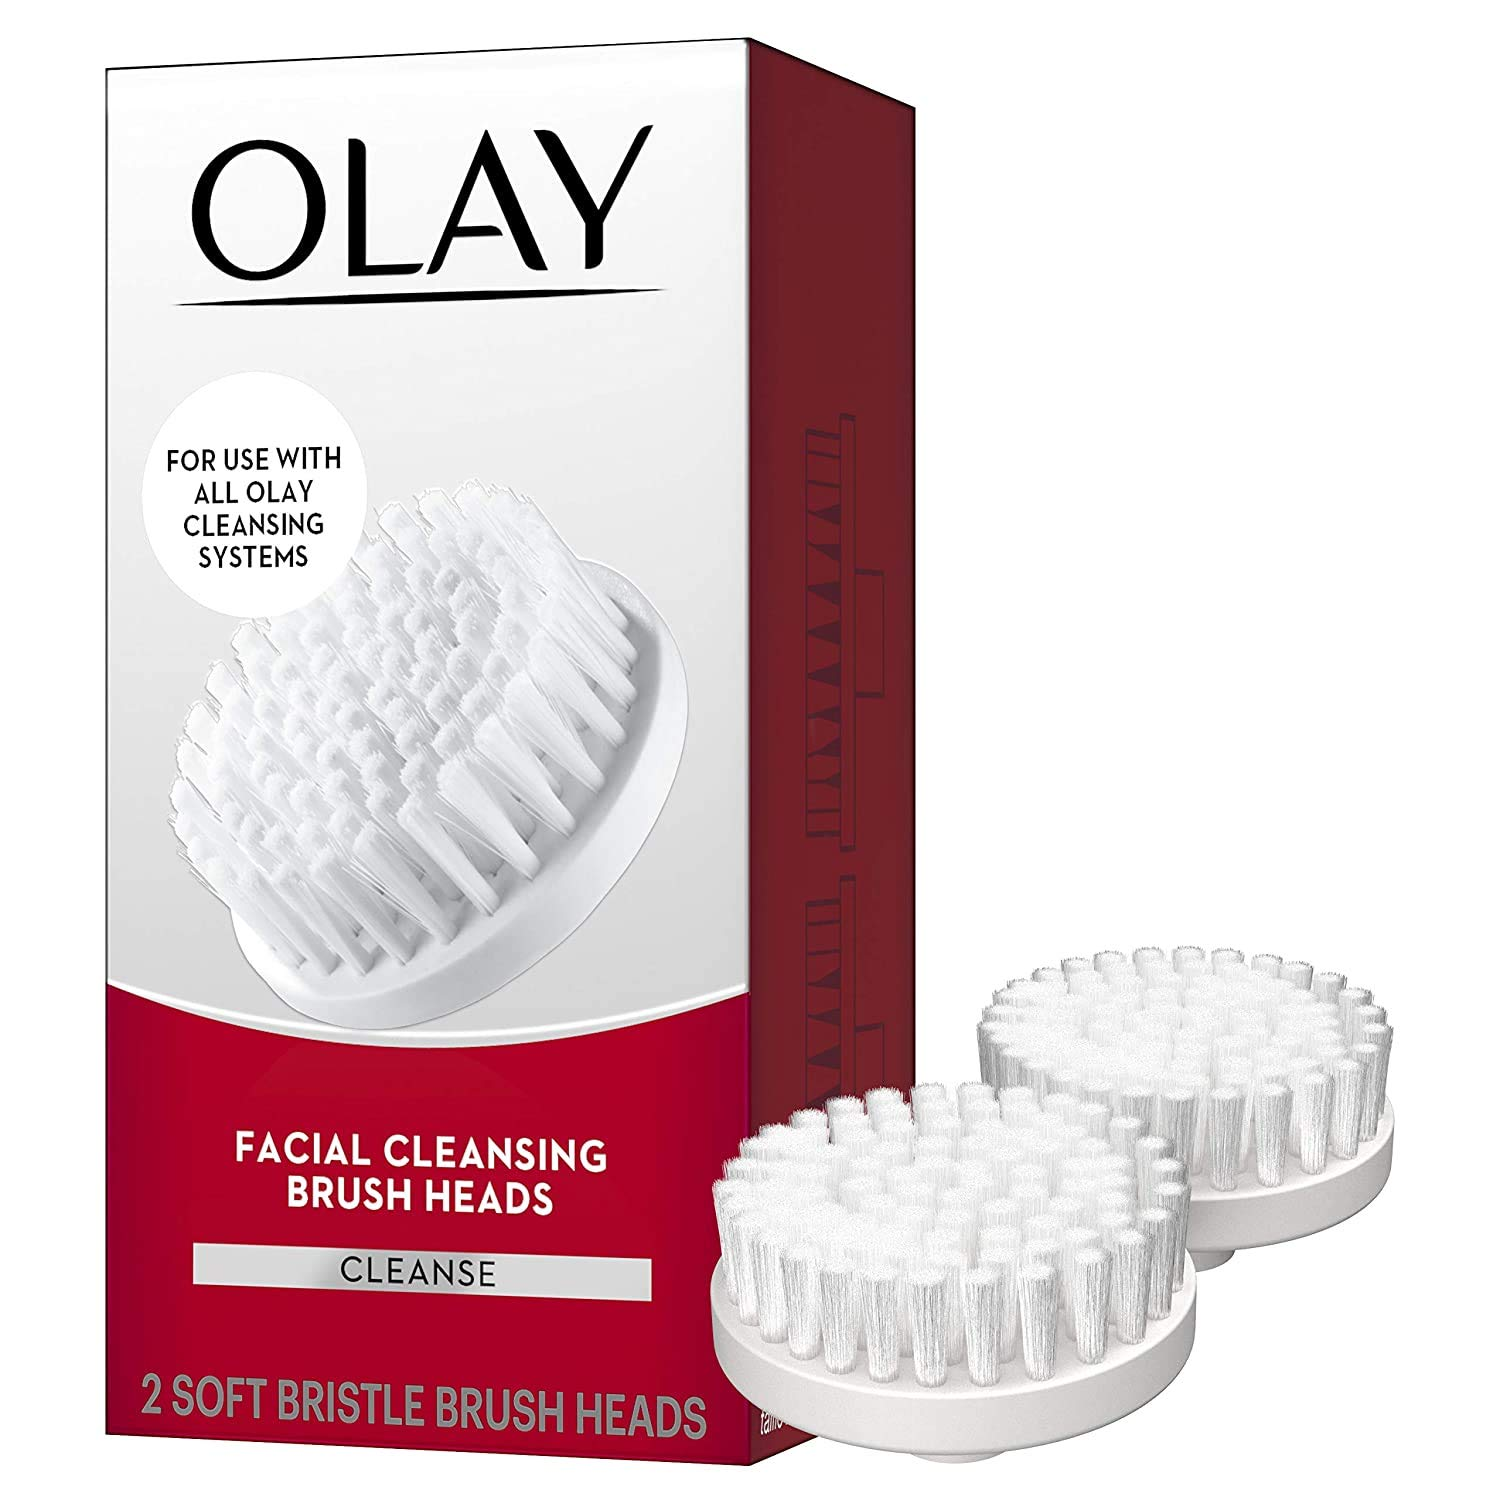 Facial Cleaning Brush by Olay ProX by Olay Advanced Facial Cleansing System Replacement Brush Heads, 2 Count